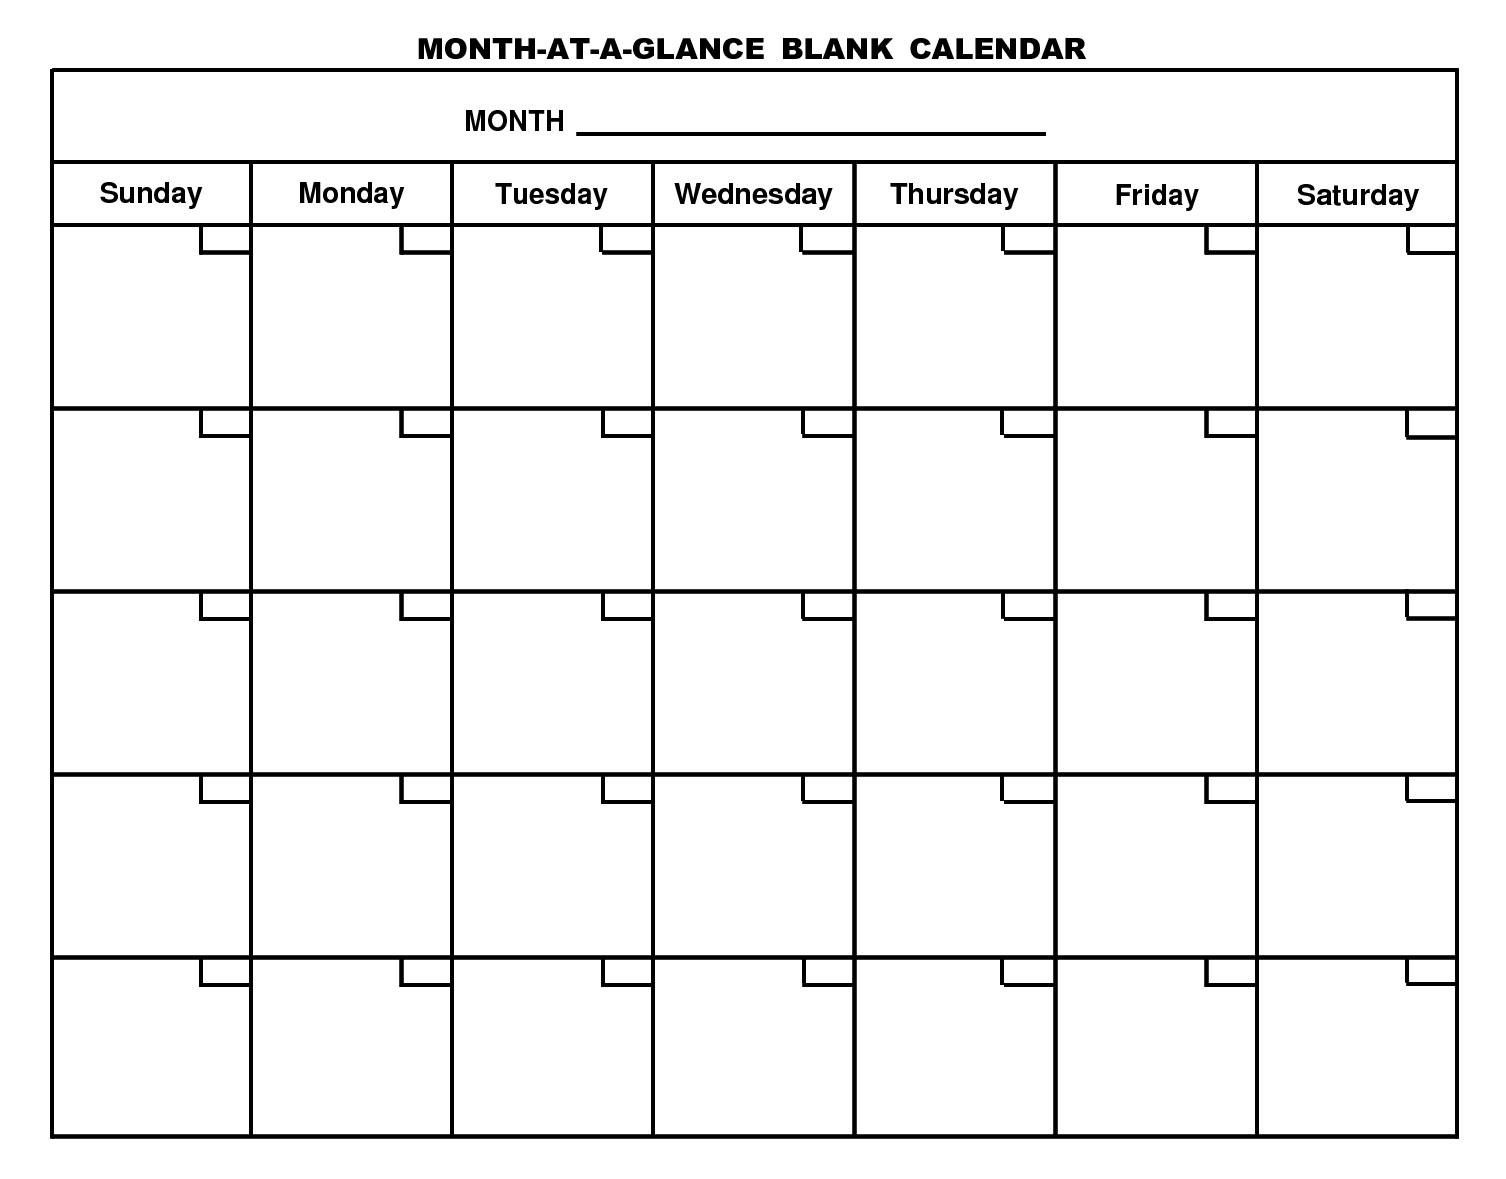 Calendar To Print Out Monthly  Blank Calendar    Blank